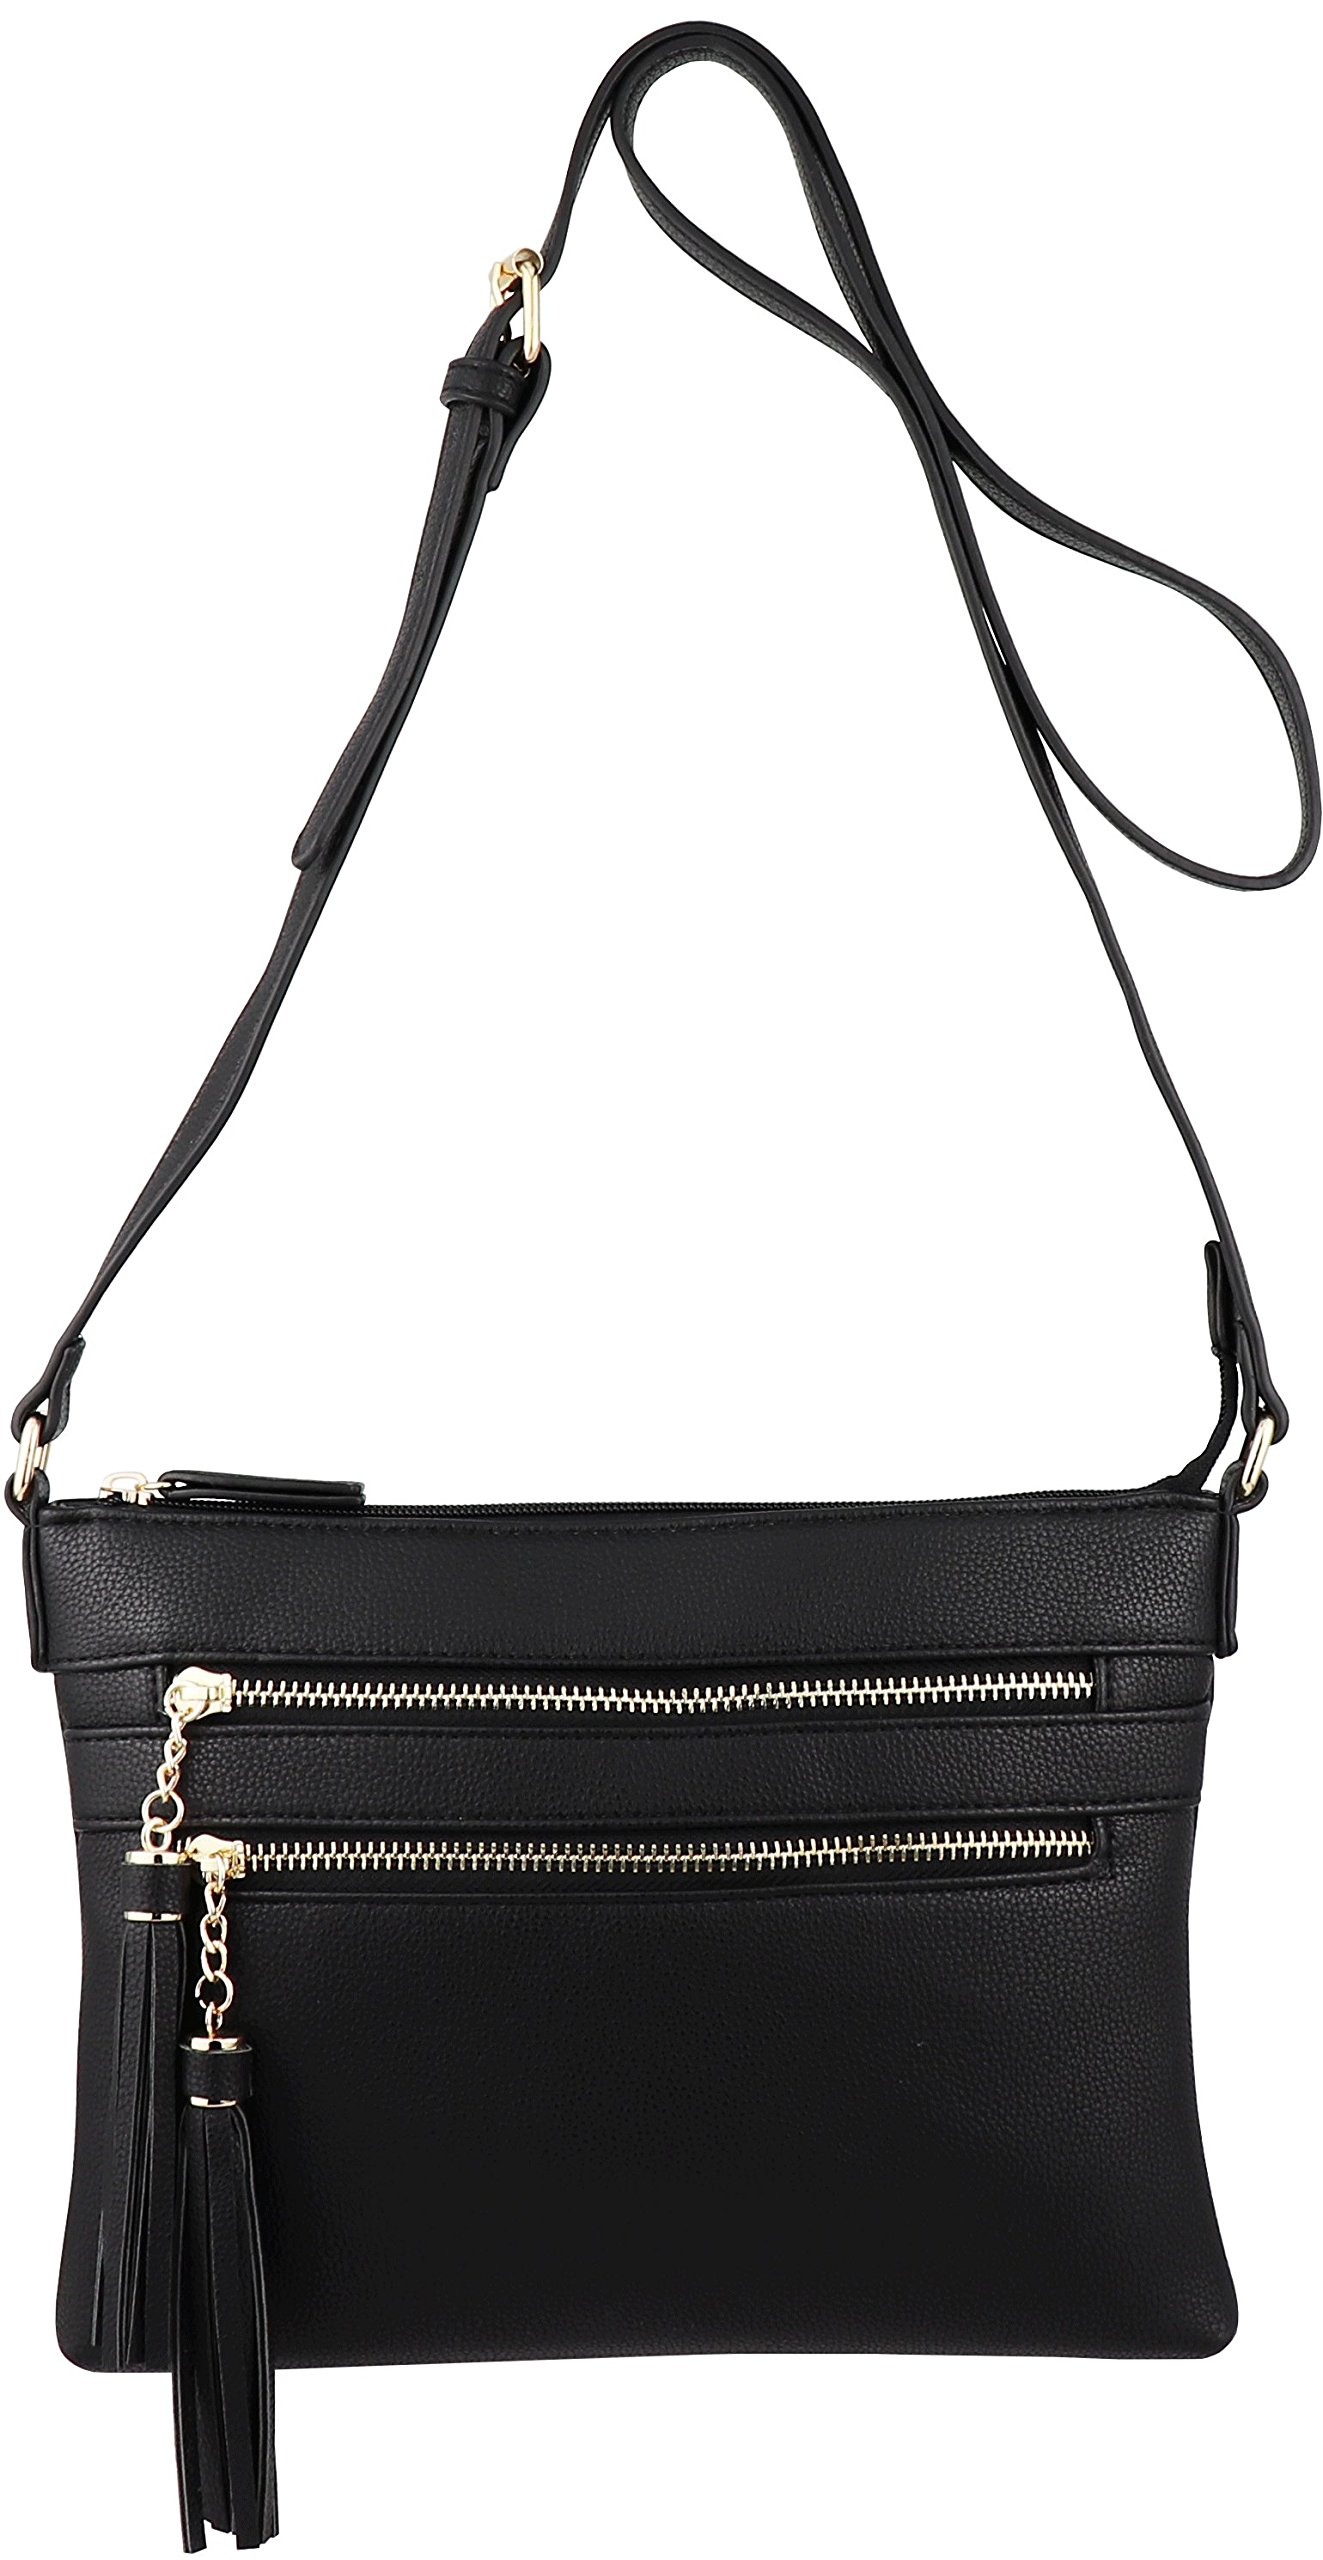 B BRENTANO Vegan Multi-Zipper Crossbody Handbag Purse with Tassel Accents (Black 1) by B BRENTANO (Image #3)